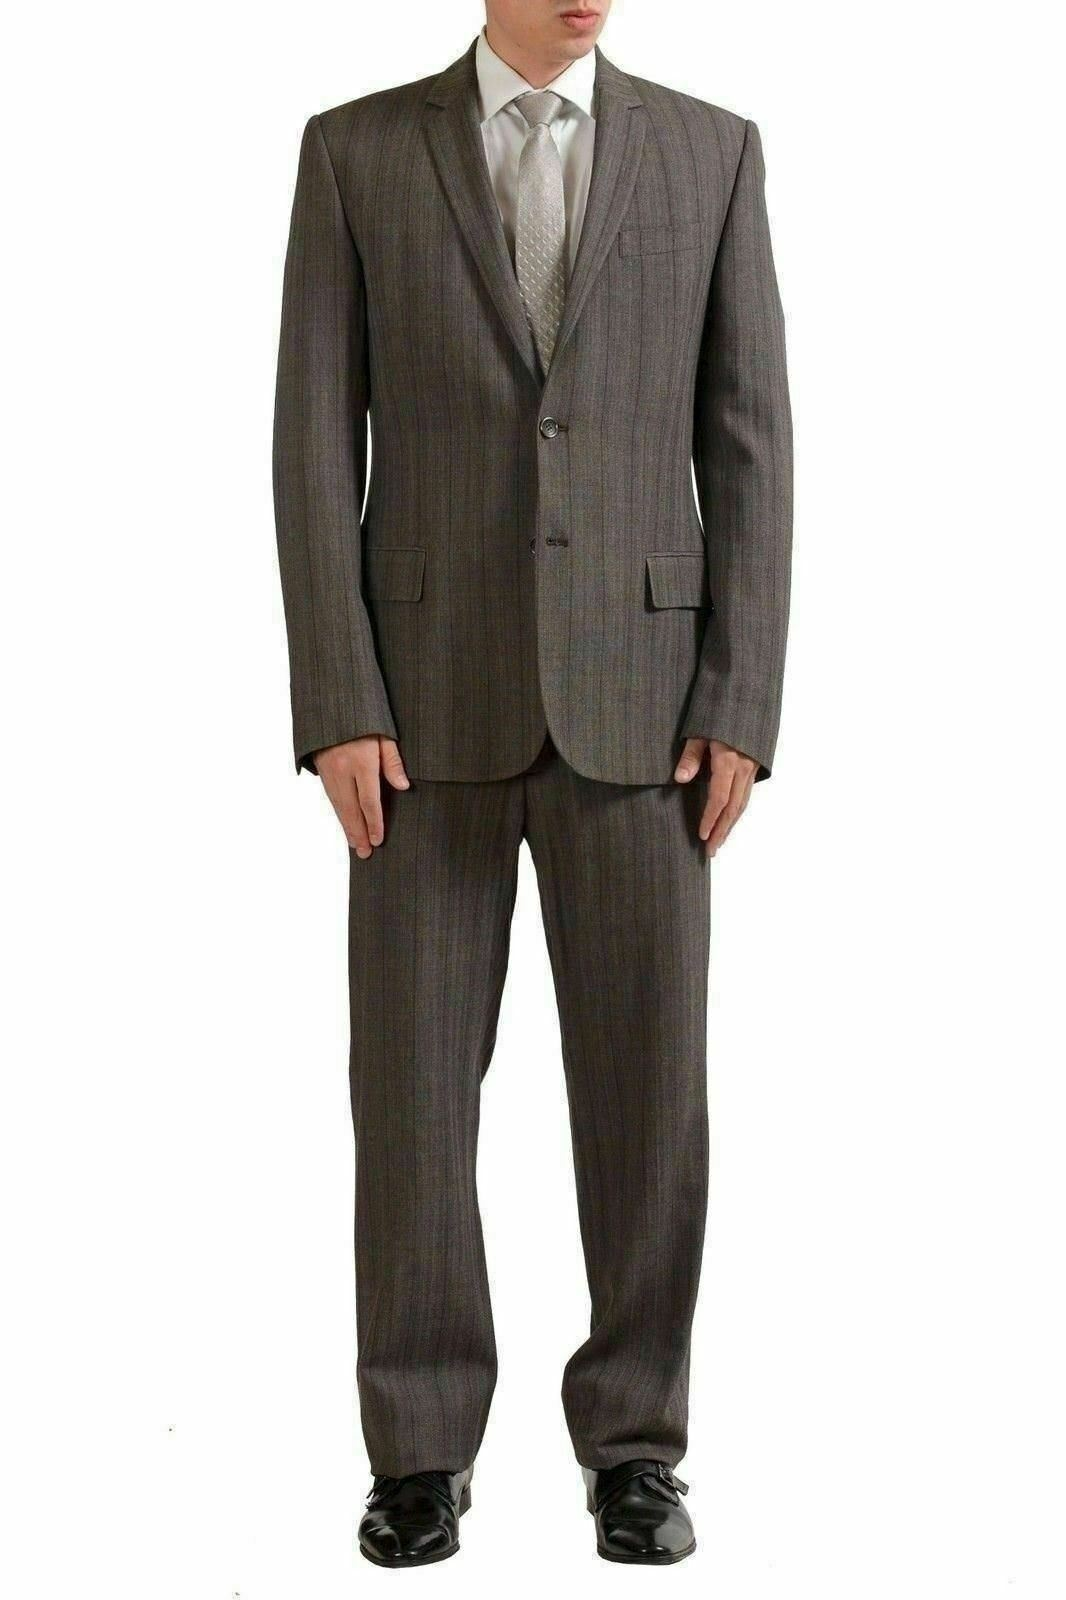 Just Cavalli Men's Wool Brown Striped Two Button Suit US 44 IT 54